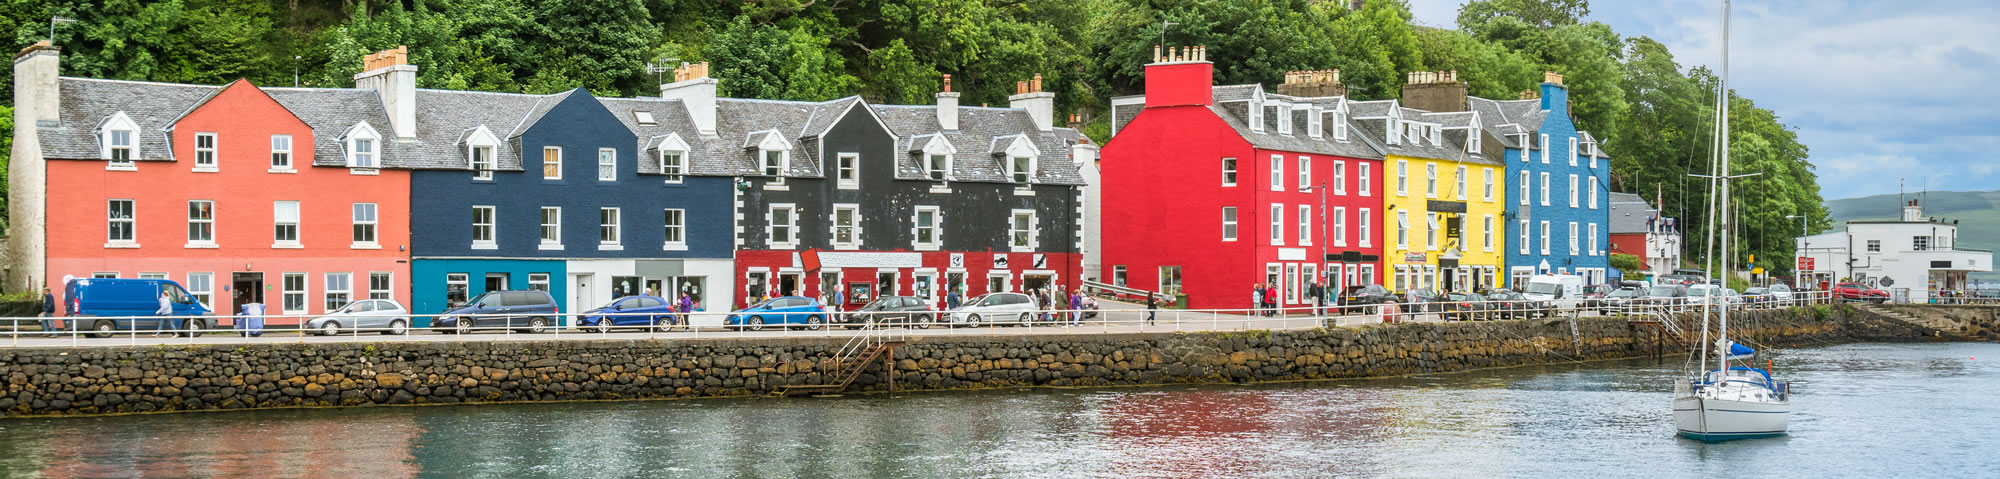 Tobermory, capital of the Isle of Mull in the Scottish Inner Hebrides